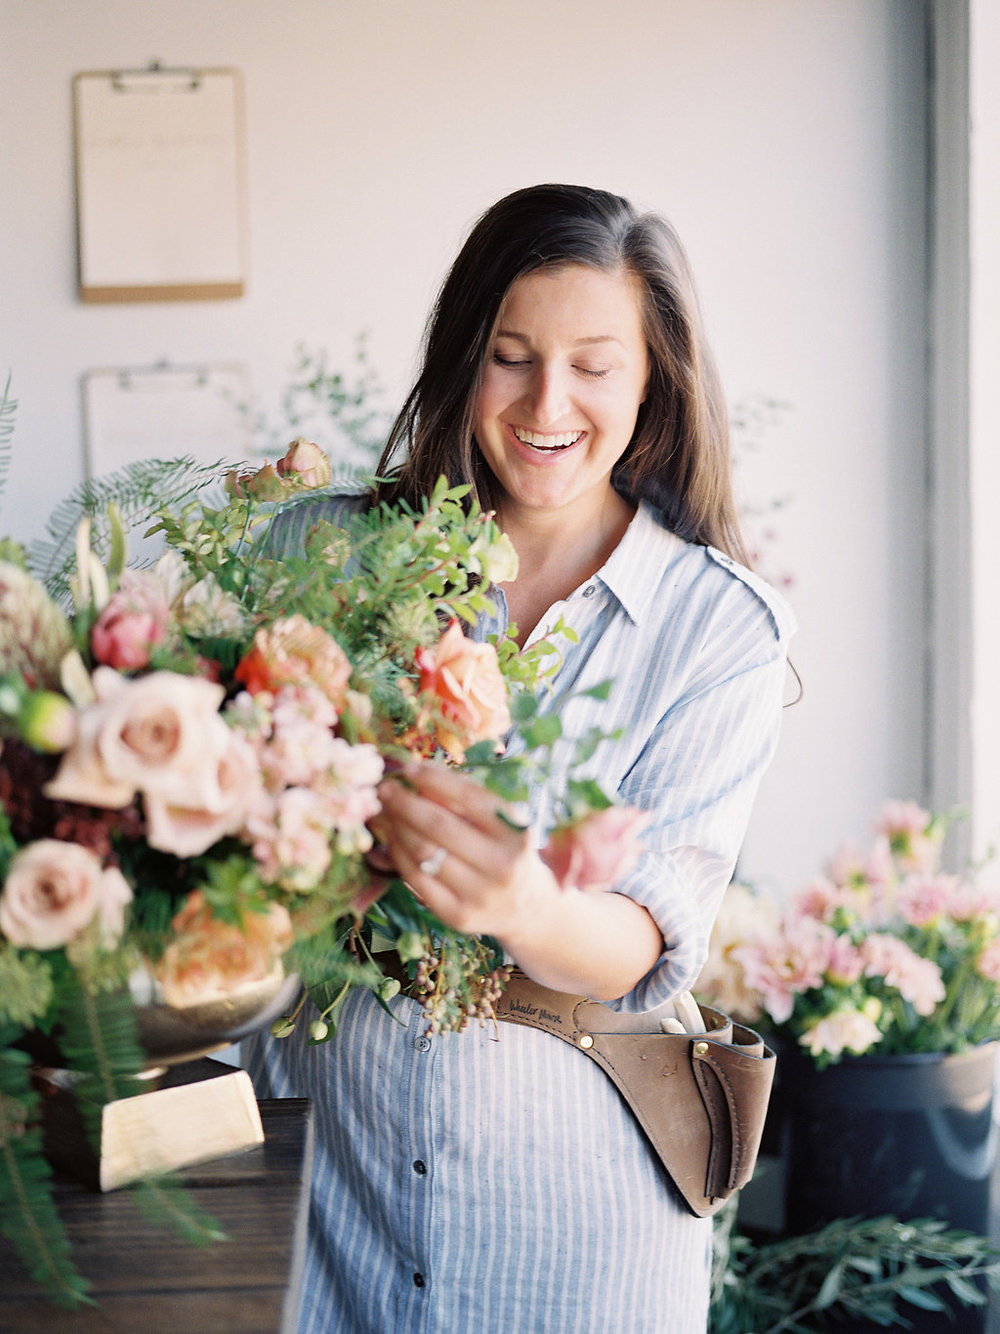 jessica-zimmerman-events-floral-business-education-webinar.jpg